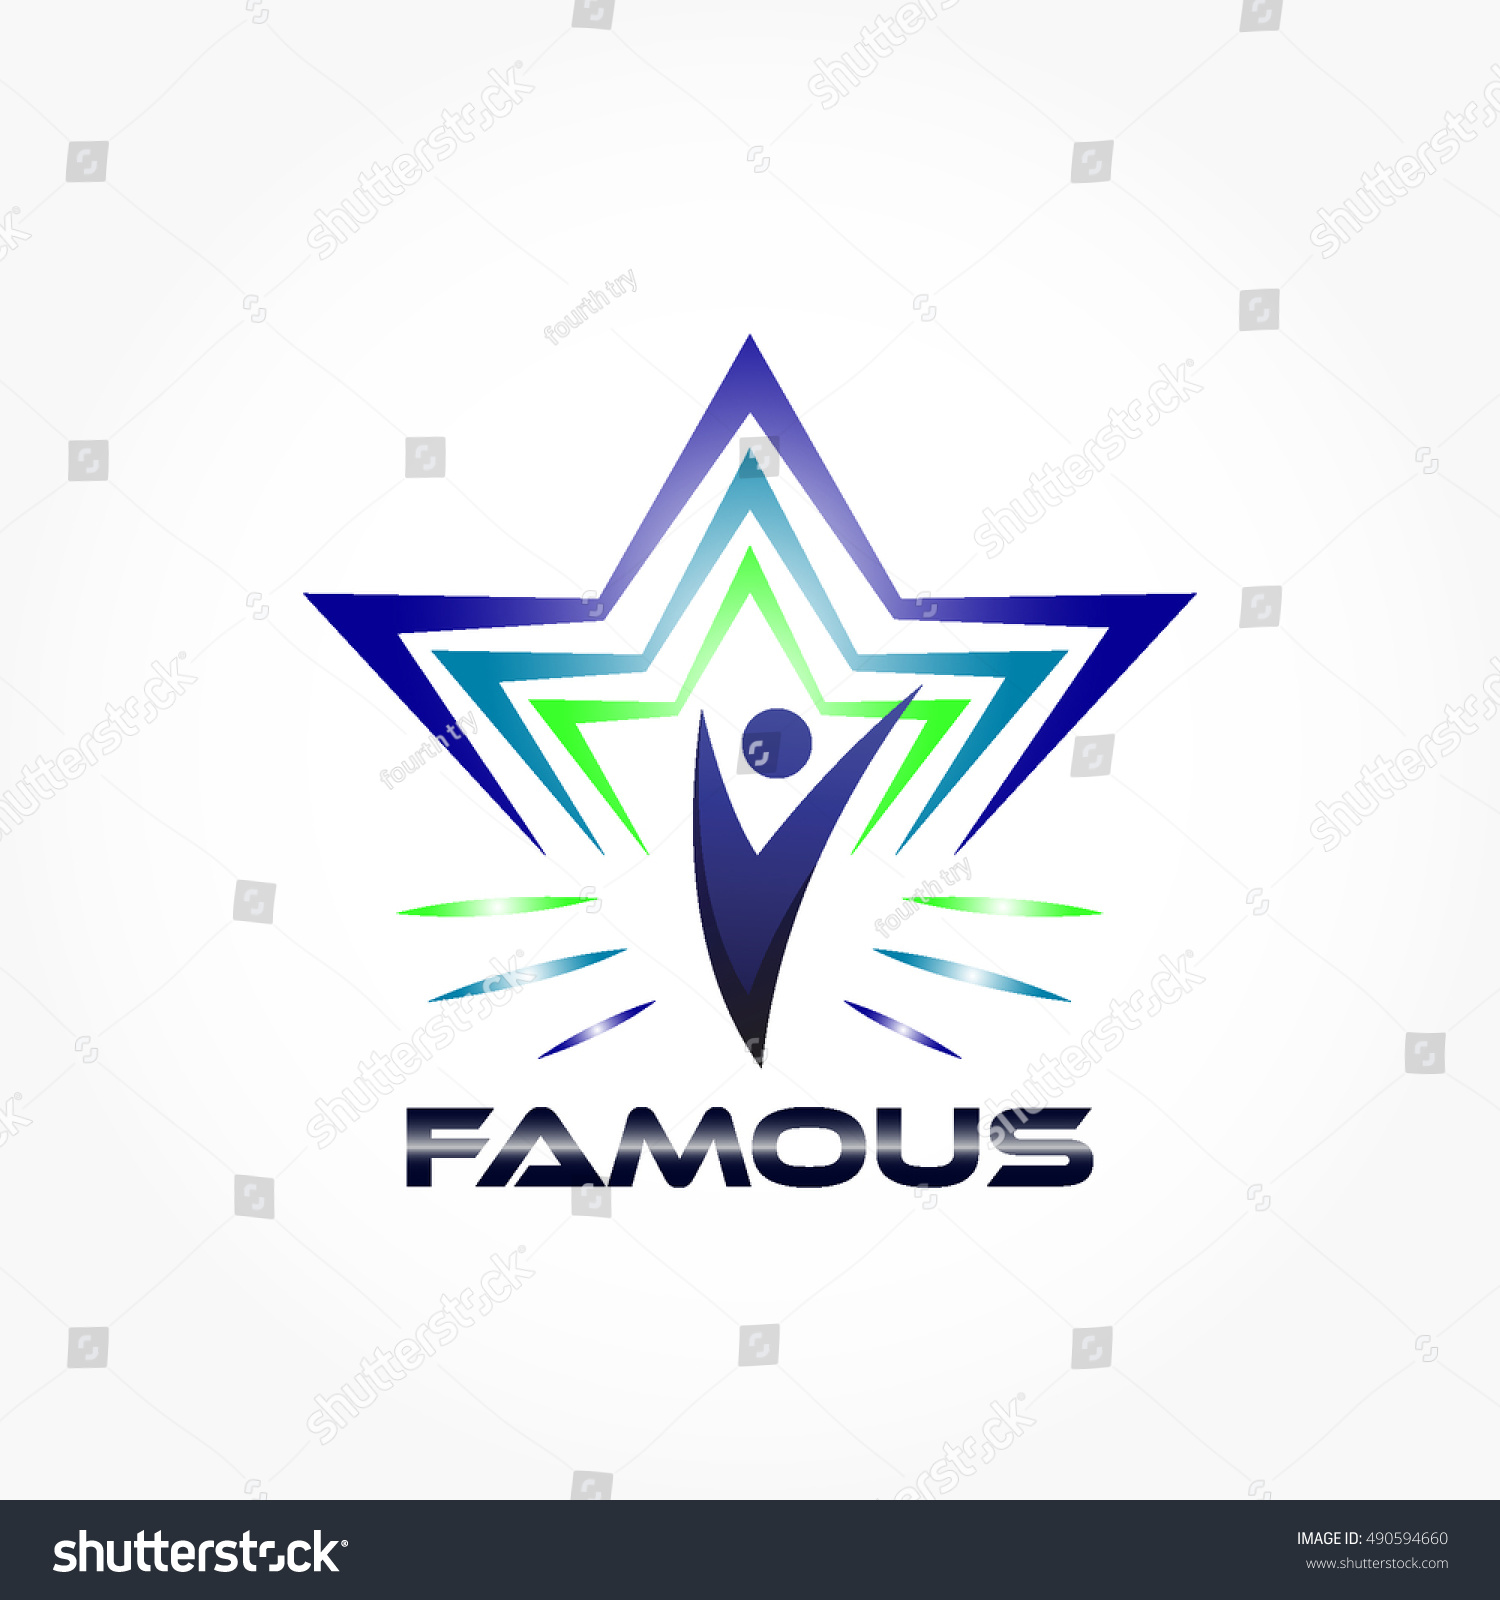 Famous Abstract Line Art : Famous logo concept some abstract lines stock vector